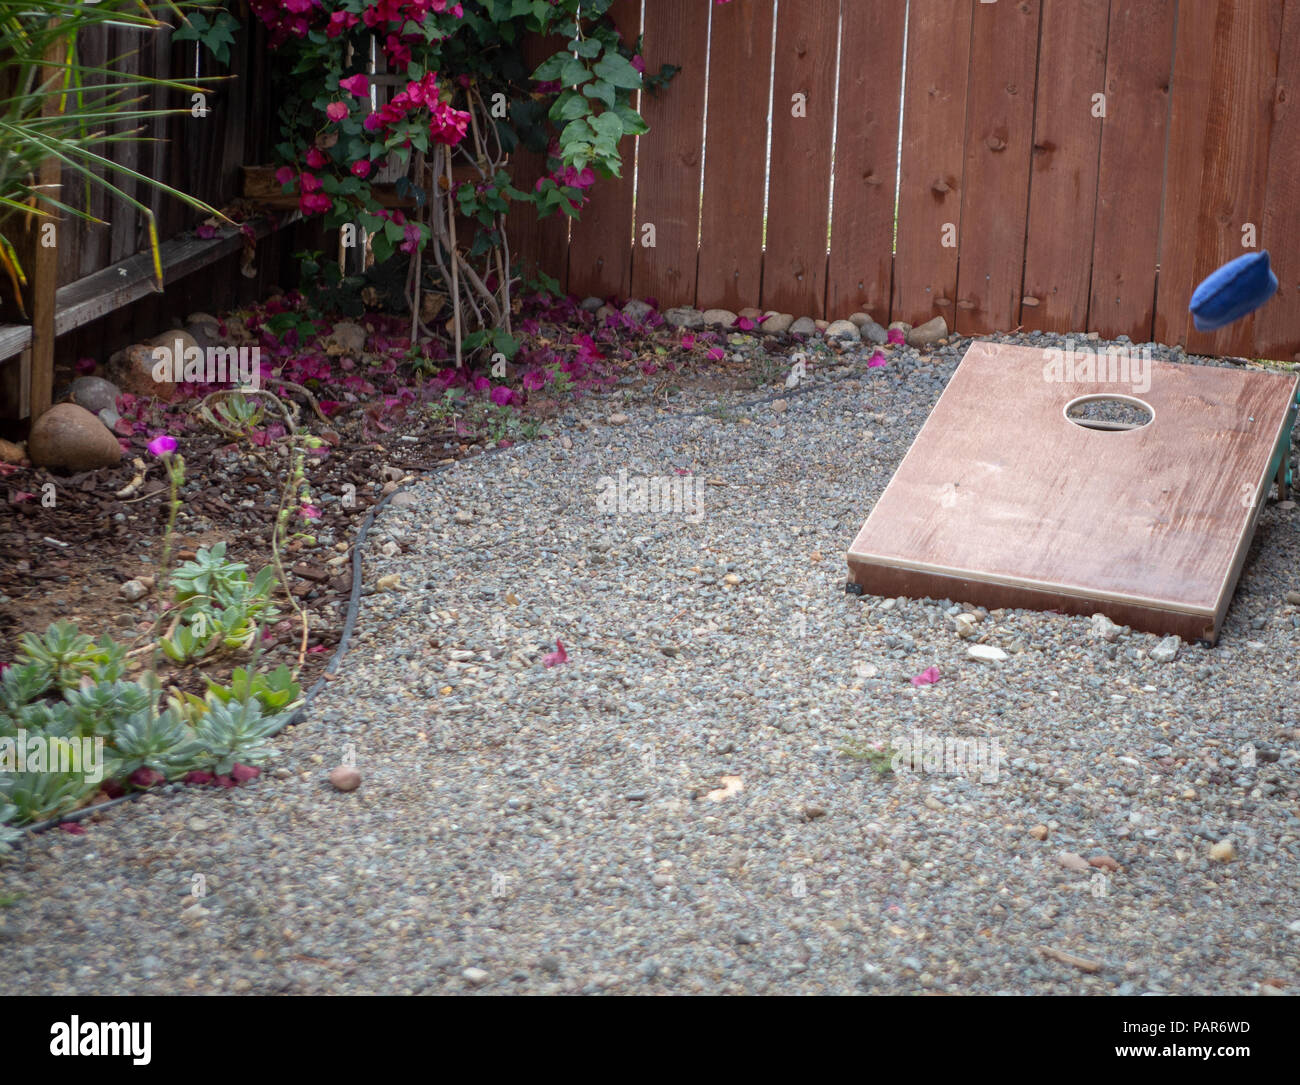 Corn hole game with bean bag being tossed - Stock Image